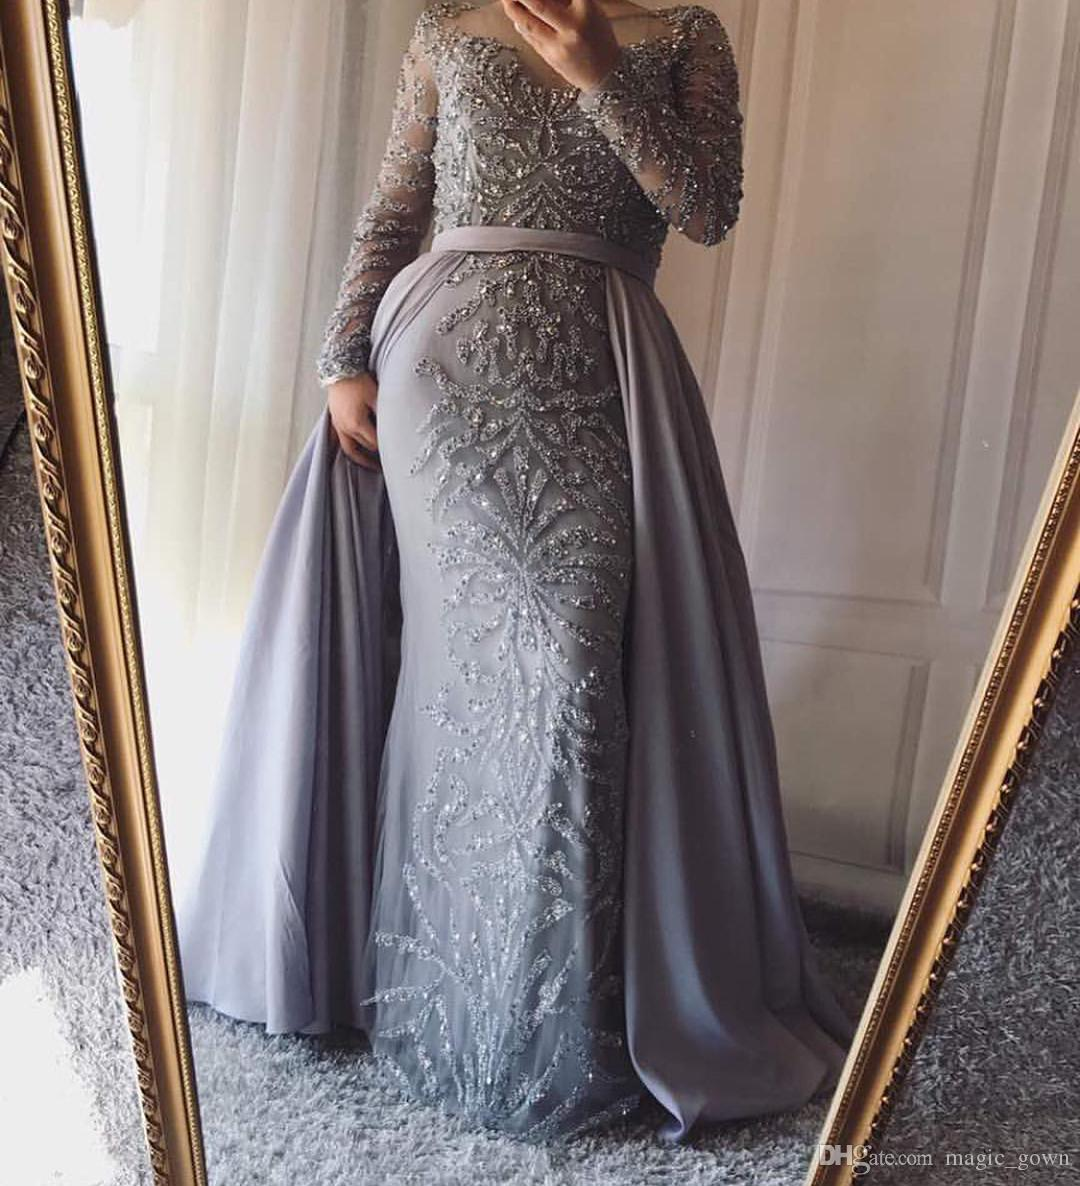 b226a3517a990 Dubai Arabic Luxury Beads Sequined Mermaid Evening Dresses with Detachable  Train Long Sleeves Formal Dresses Evening Wear robe de soiree